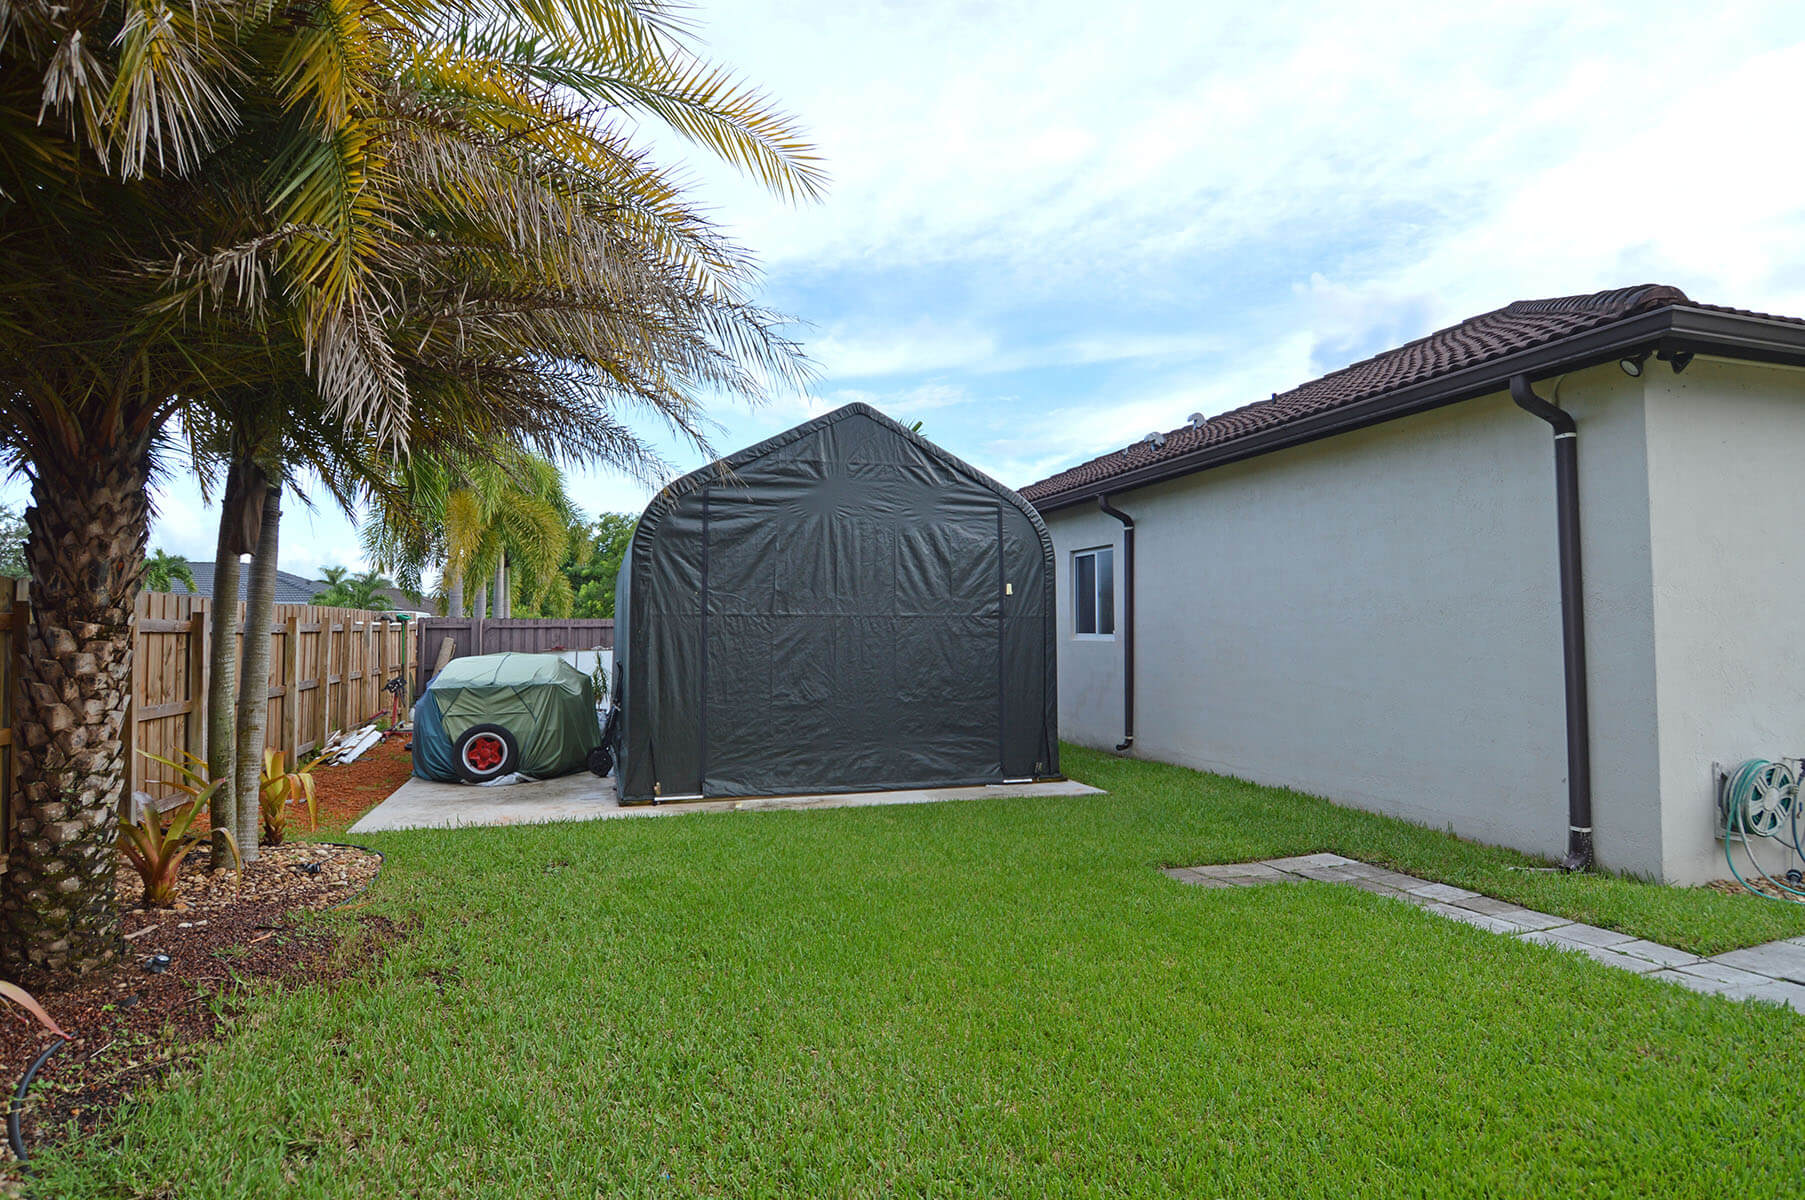 13133-SW-213-Ter-Miami-FL-33177-118-House-Side-Right.jpg